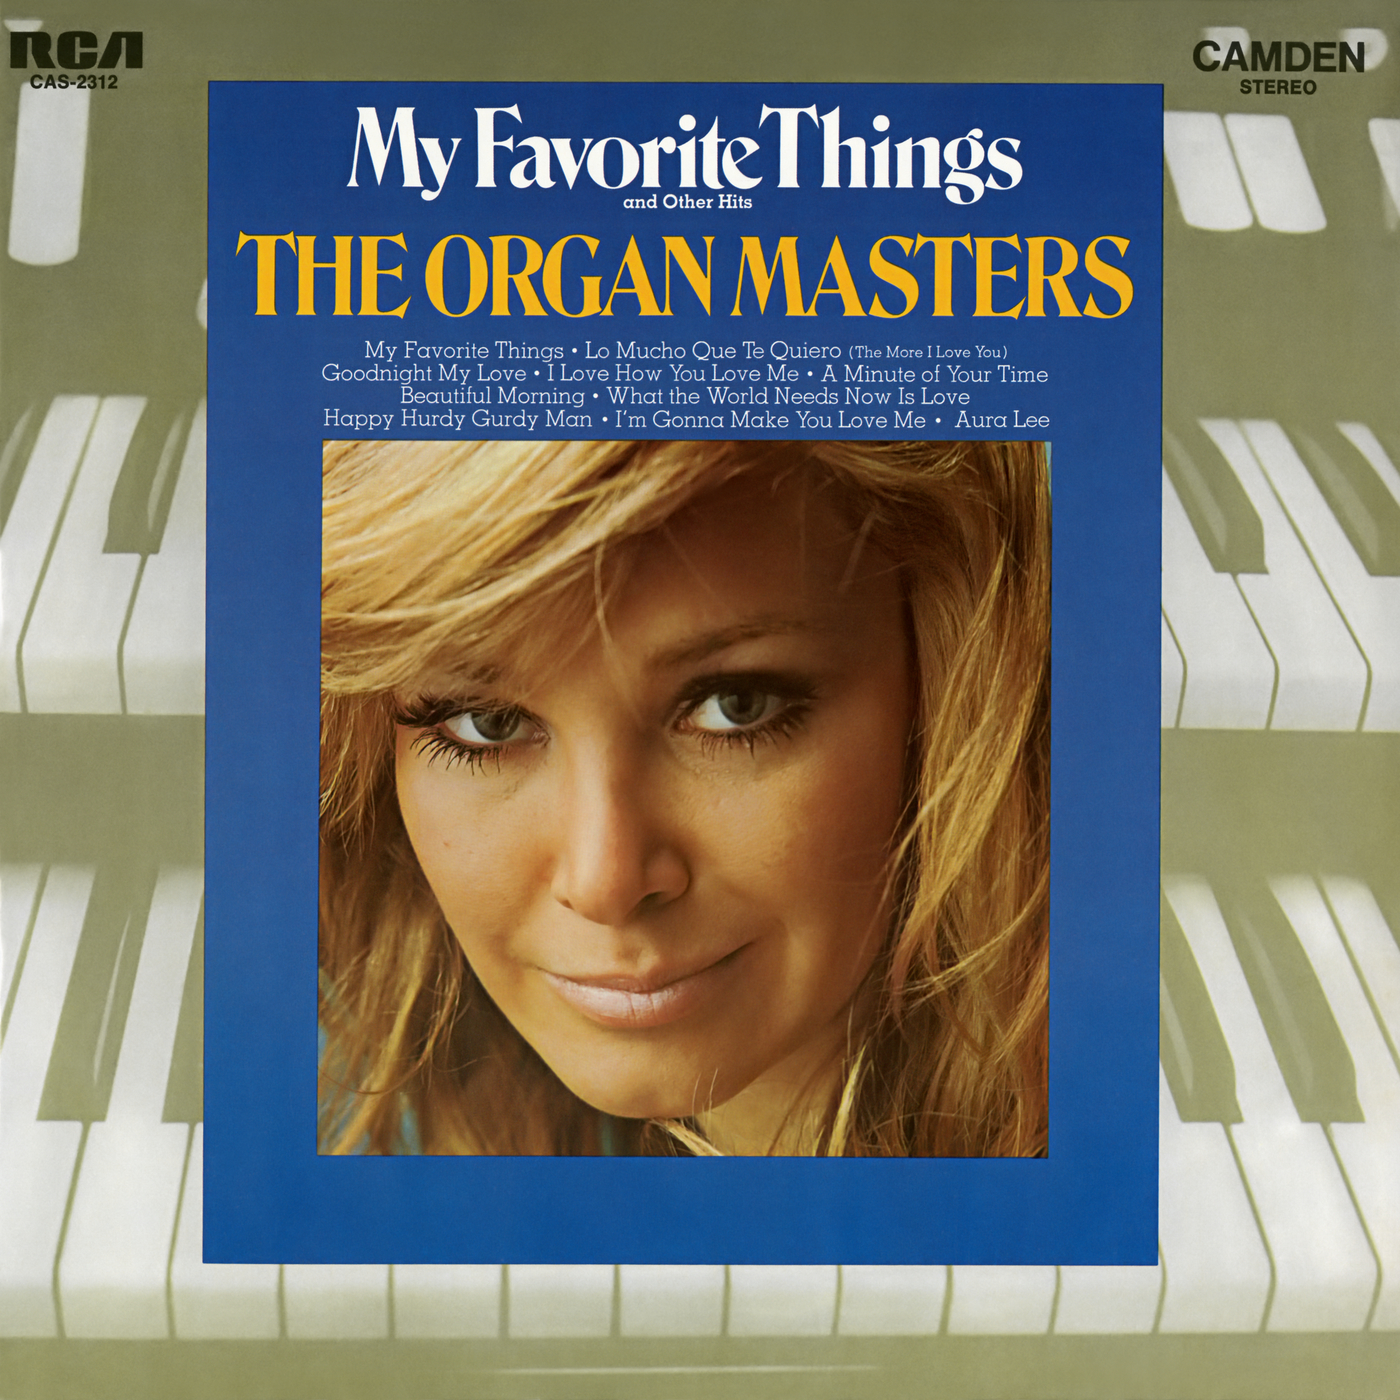 My Favorite Things and Other Hits - The Organ Masters